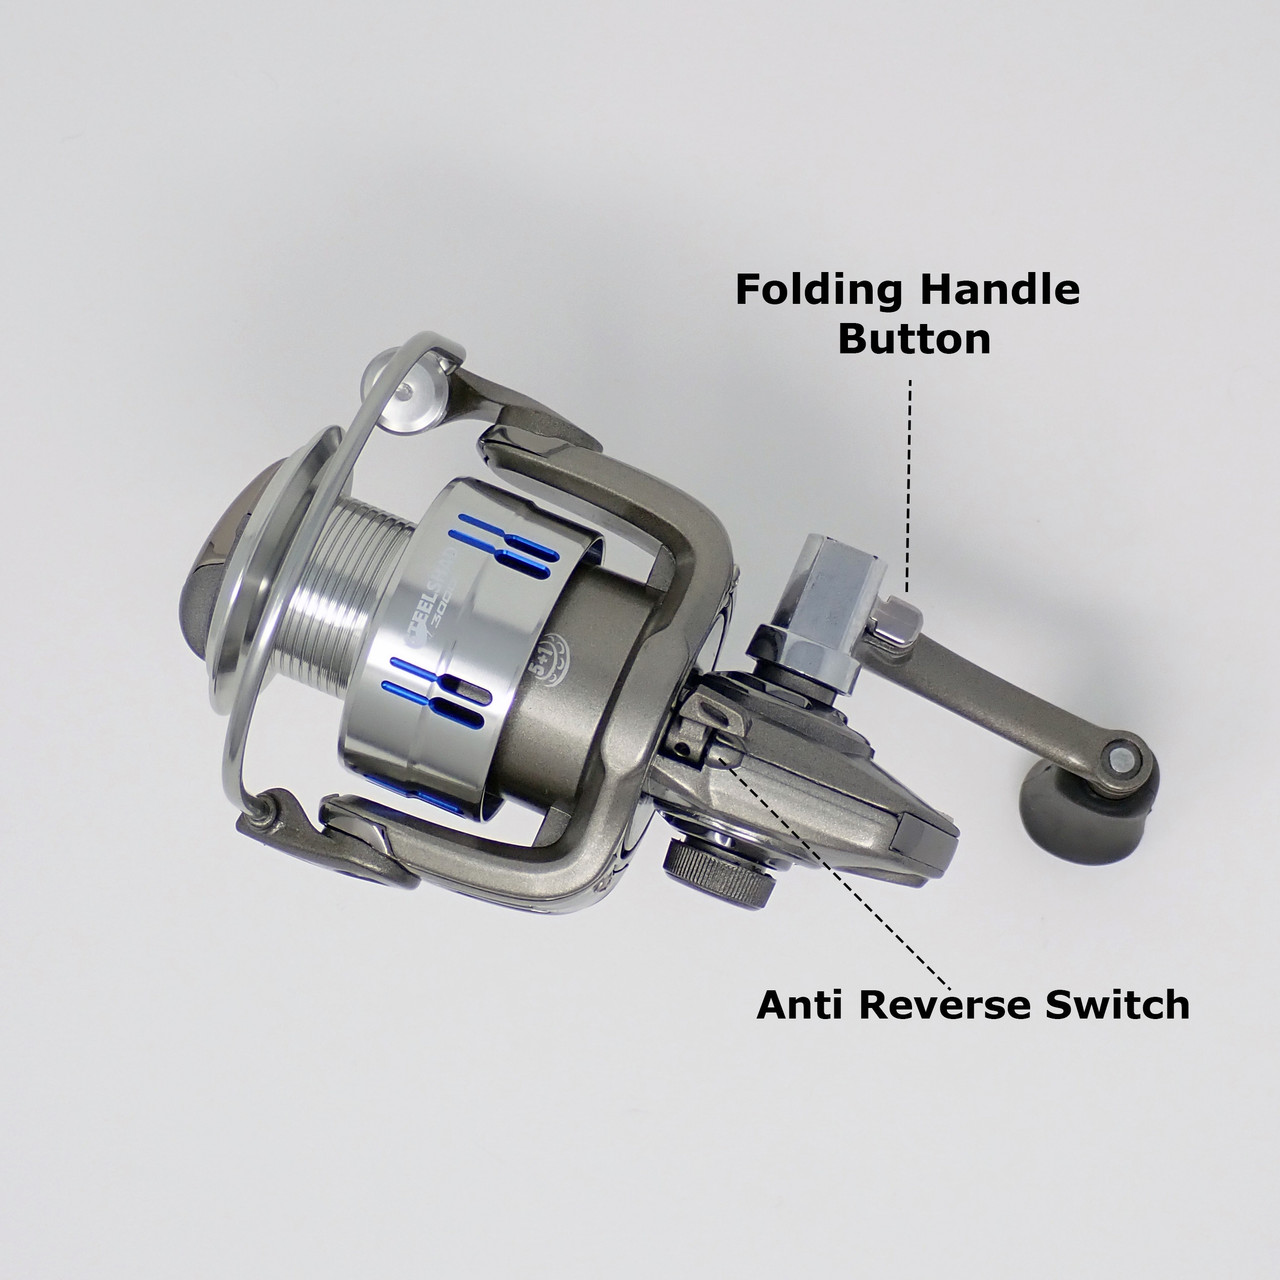 SteelShad 3000 Series Spinning Reel Parts Diagram